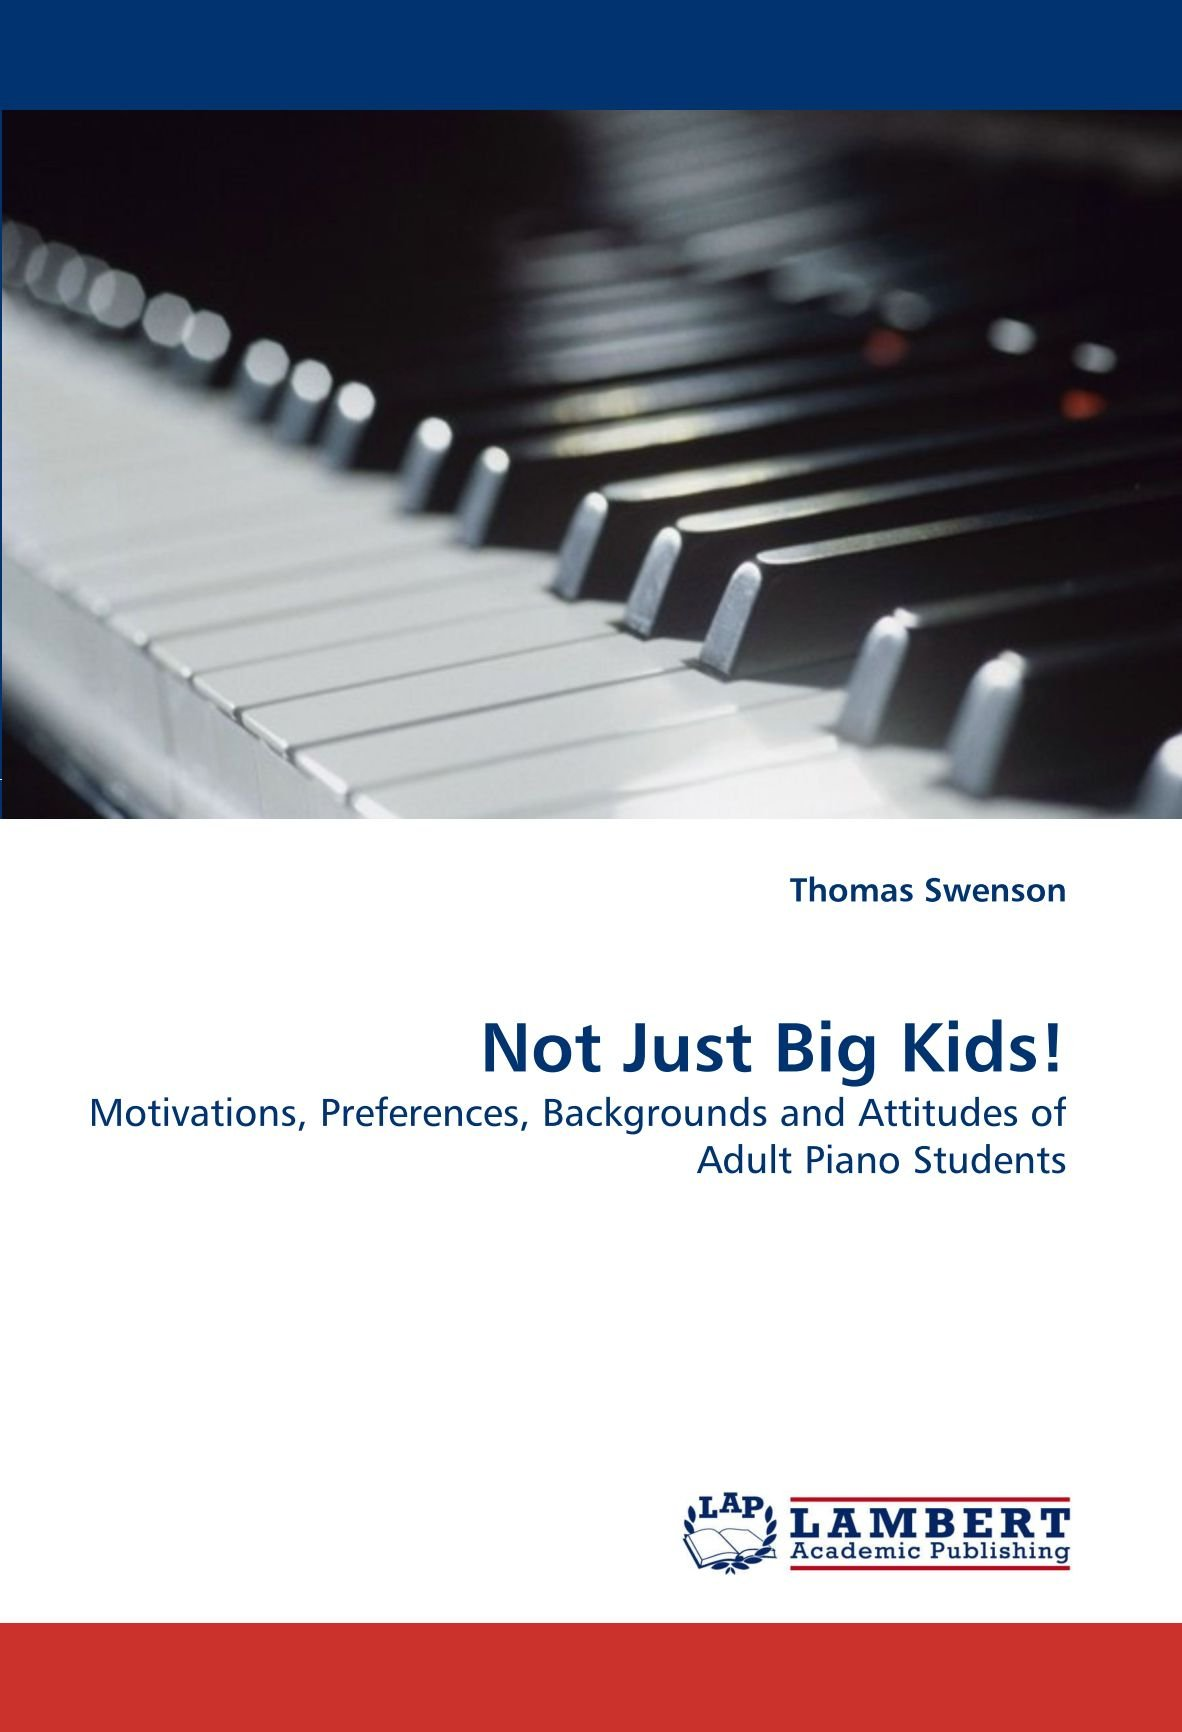 Motivations, Preferences, Backgrounds and Attitudes of Adult Piano Students  Paperback – March 8, 2011